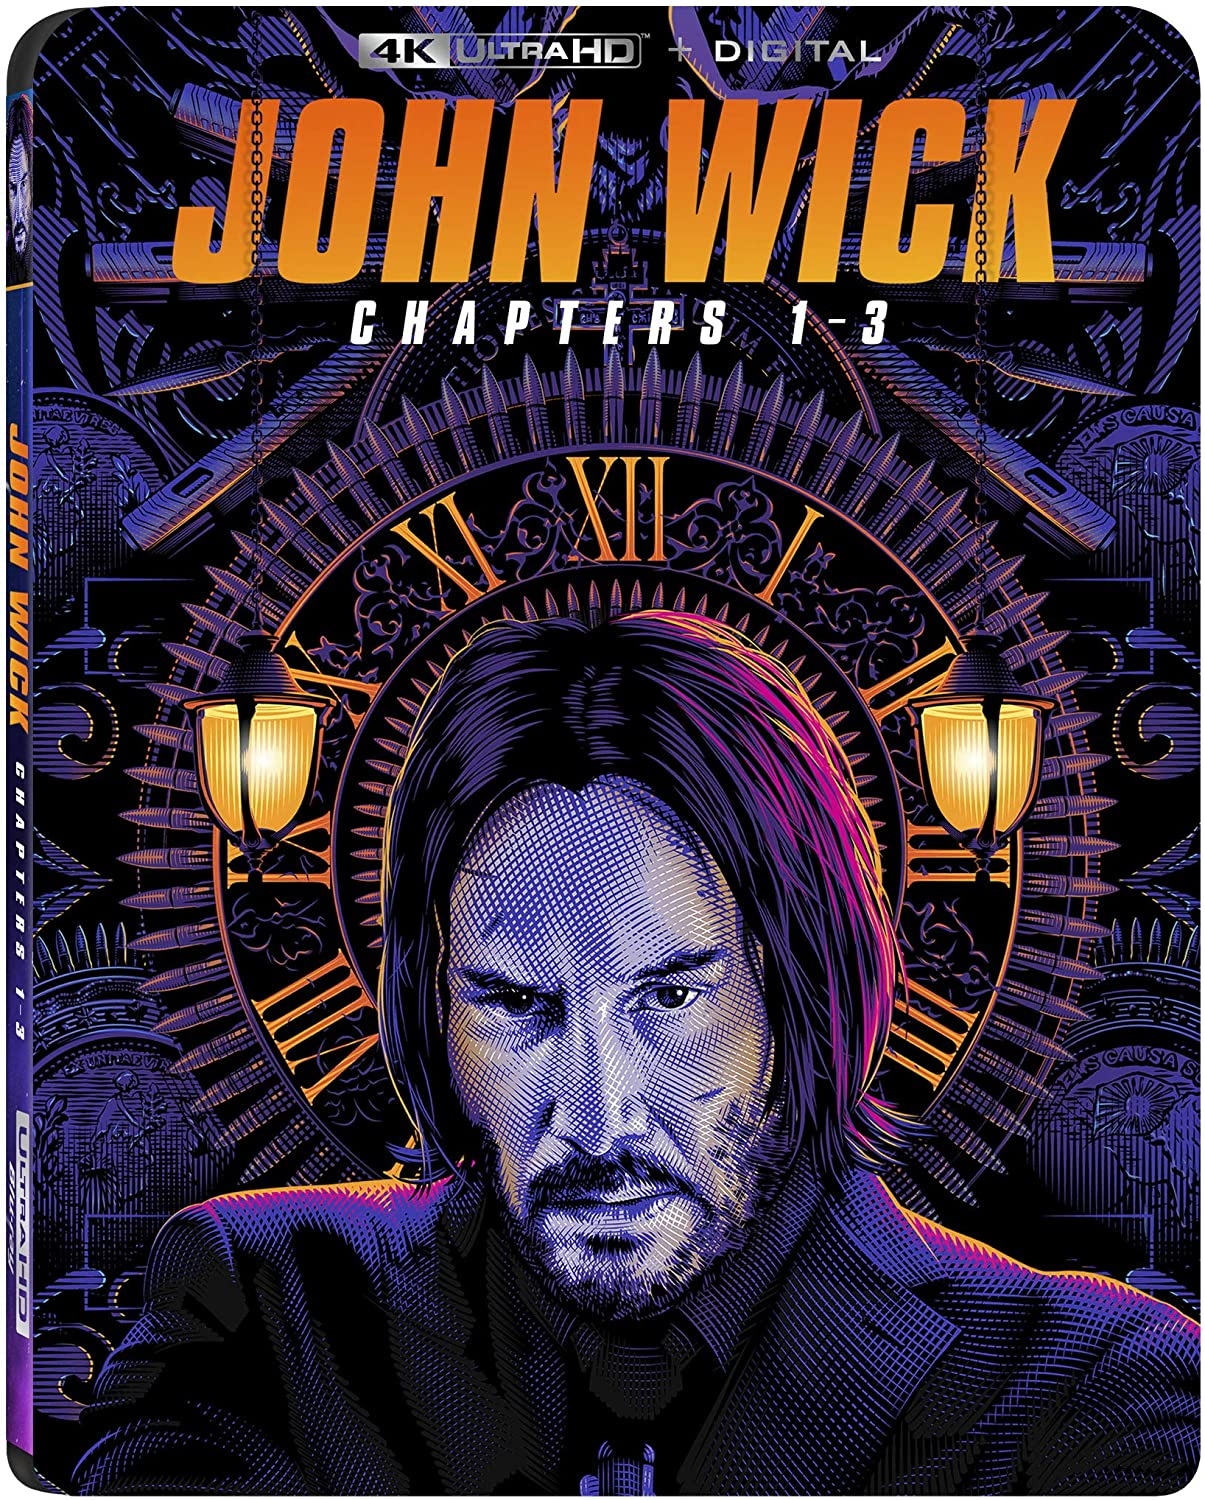 John Wick 1-3 (4K + DIGITAL Blu-ray)